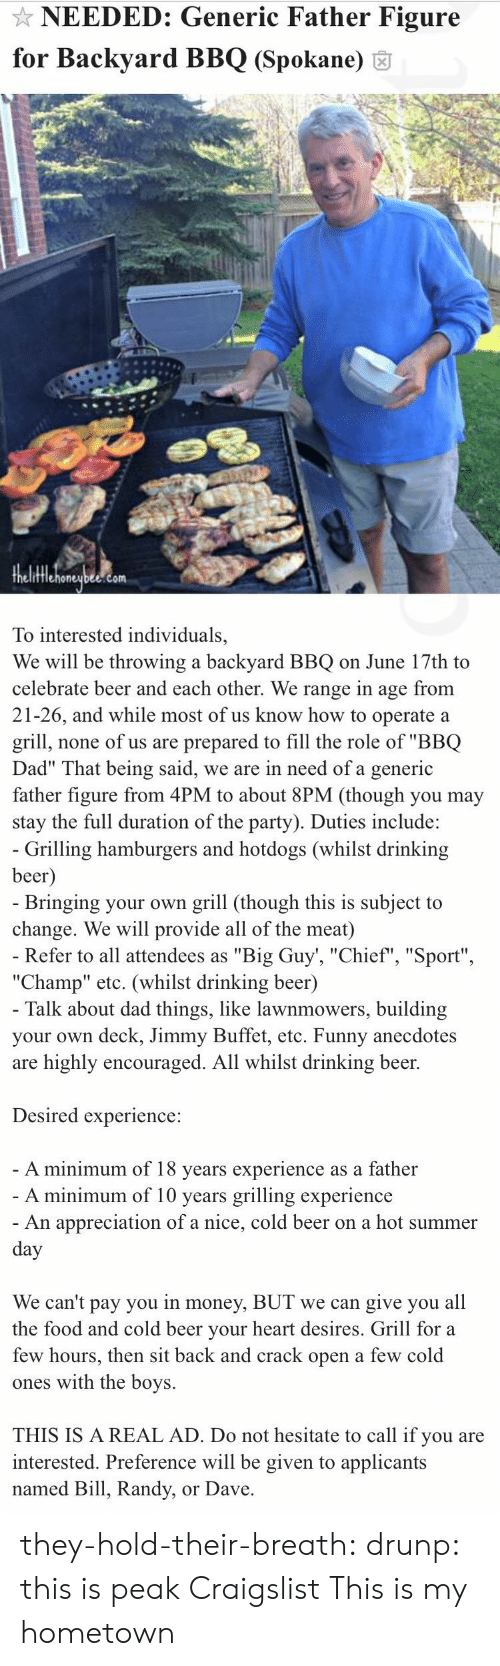 """Beer, Craigslist, and Dad: NEEDED: Generic Father Figure  for Backyard BBQ (Spokane) 6  fflehoneubee.com  To interested individuals,  We will be throwing a backyard BBQ on June 17th to  celebrate beer and each other. We range in age from  21-26, and while most of us know how to operate a  grill, none of us are prepared to fill the role of """"BBQ  Dad"""" That being said, we are in need of a generic  father figure from 4PM to about 8PM (though you may  stay the full duration of the party). Duties include:   Grilling hamburgers and hotdogs (whilst drinking  beer  Bringing your own grill (though this is subject to  change. We will provide all of the meat)  Refer to all attendees as """"Big Guy', """"Chief"""", """"Sport""""  """"Champ"""" etc. (whilst drinking beer)  Talk about dad things, like lawnmowers, building  your own deck, Jimmy Buffet, etc. Funny anecdotes  are highly encouraged. All whilst drinking beer.  Desired experience:  A minimum of 18 vears experience as a father  A minimum of 10 years grilling experience  An appreciation of a nice, cold beer on a hot summer  We can't pay you in money, BUT we can give you all  the food and cold beer vour heart desires. Grill for a  few hours, then sit back and crack open a few cold  ones with the boys.  THIS IS A REAL AD. Do not hesitate to call if you are  interested. Preference will be given to applicants  named Bill, Randy, or Dave they-hold-their-breath:  drunp: this is peak Craigslist  This is my hometown"""